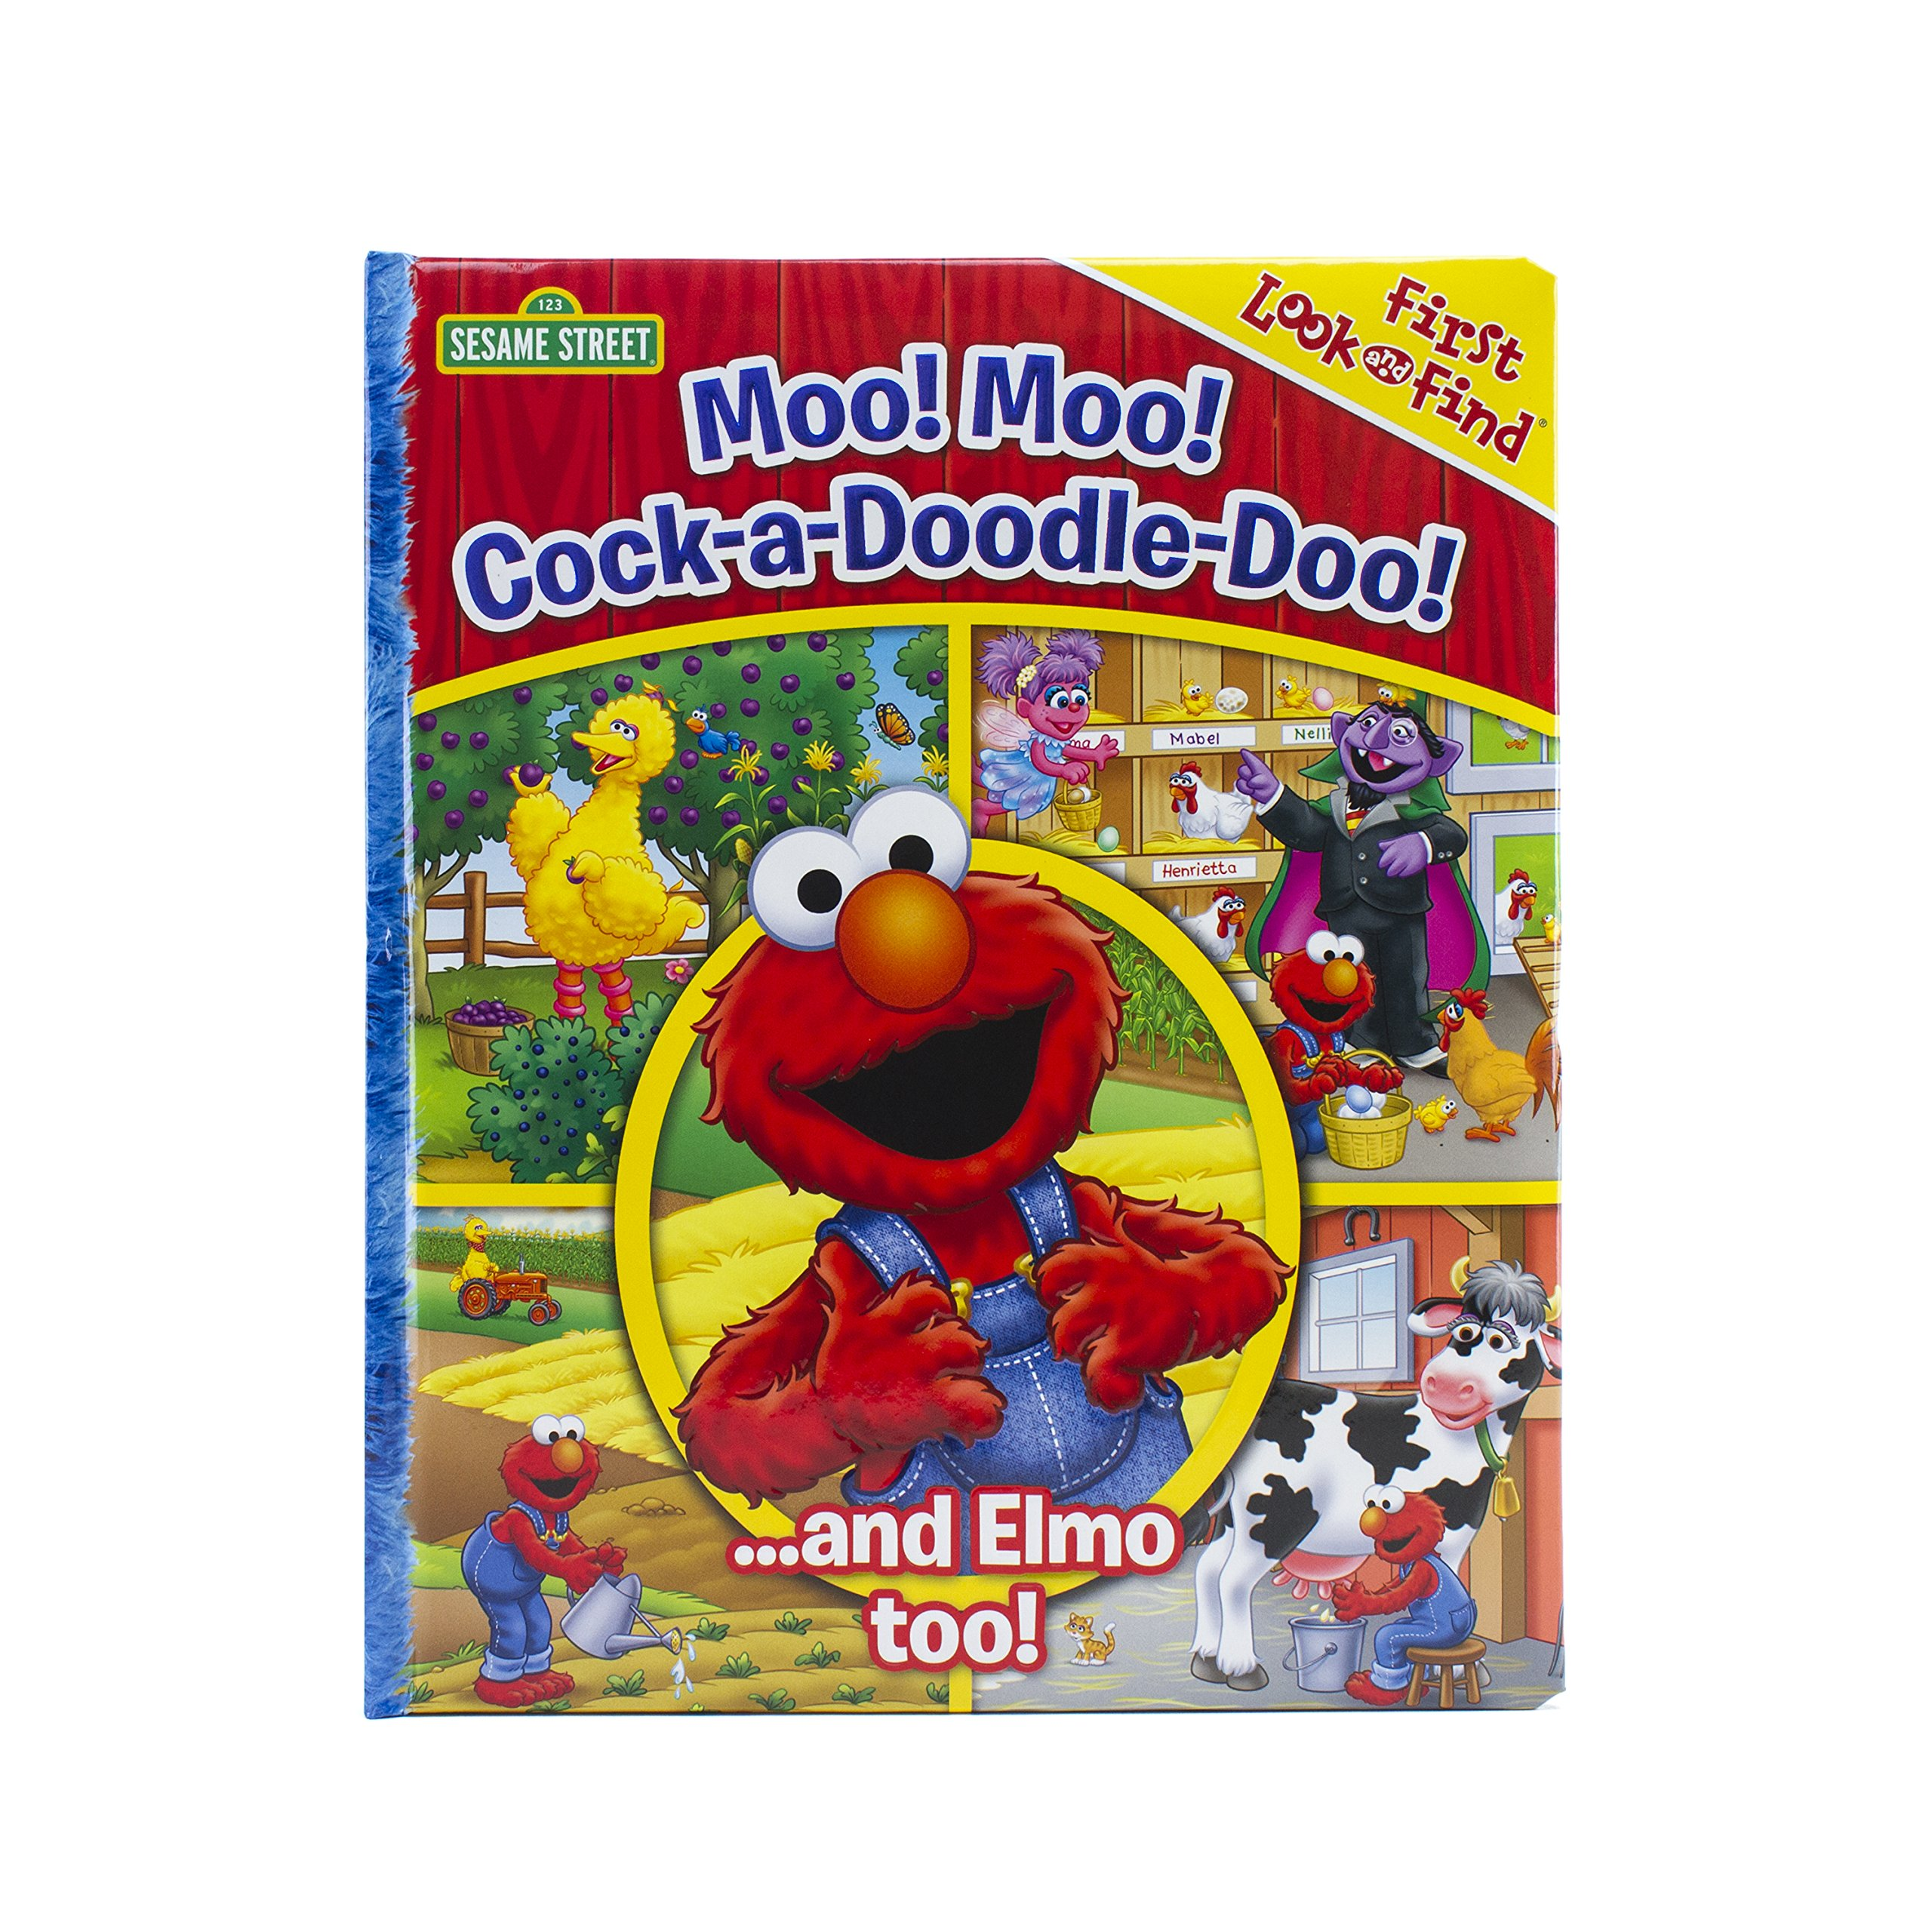 Download Sesame Street - Moo! Moo! Cock-a-Doodle-Doo! ...and Elmo too! - PI Kids ebook